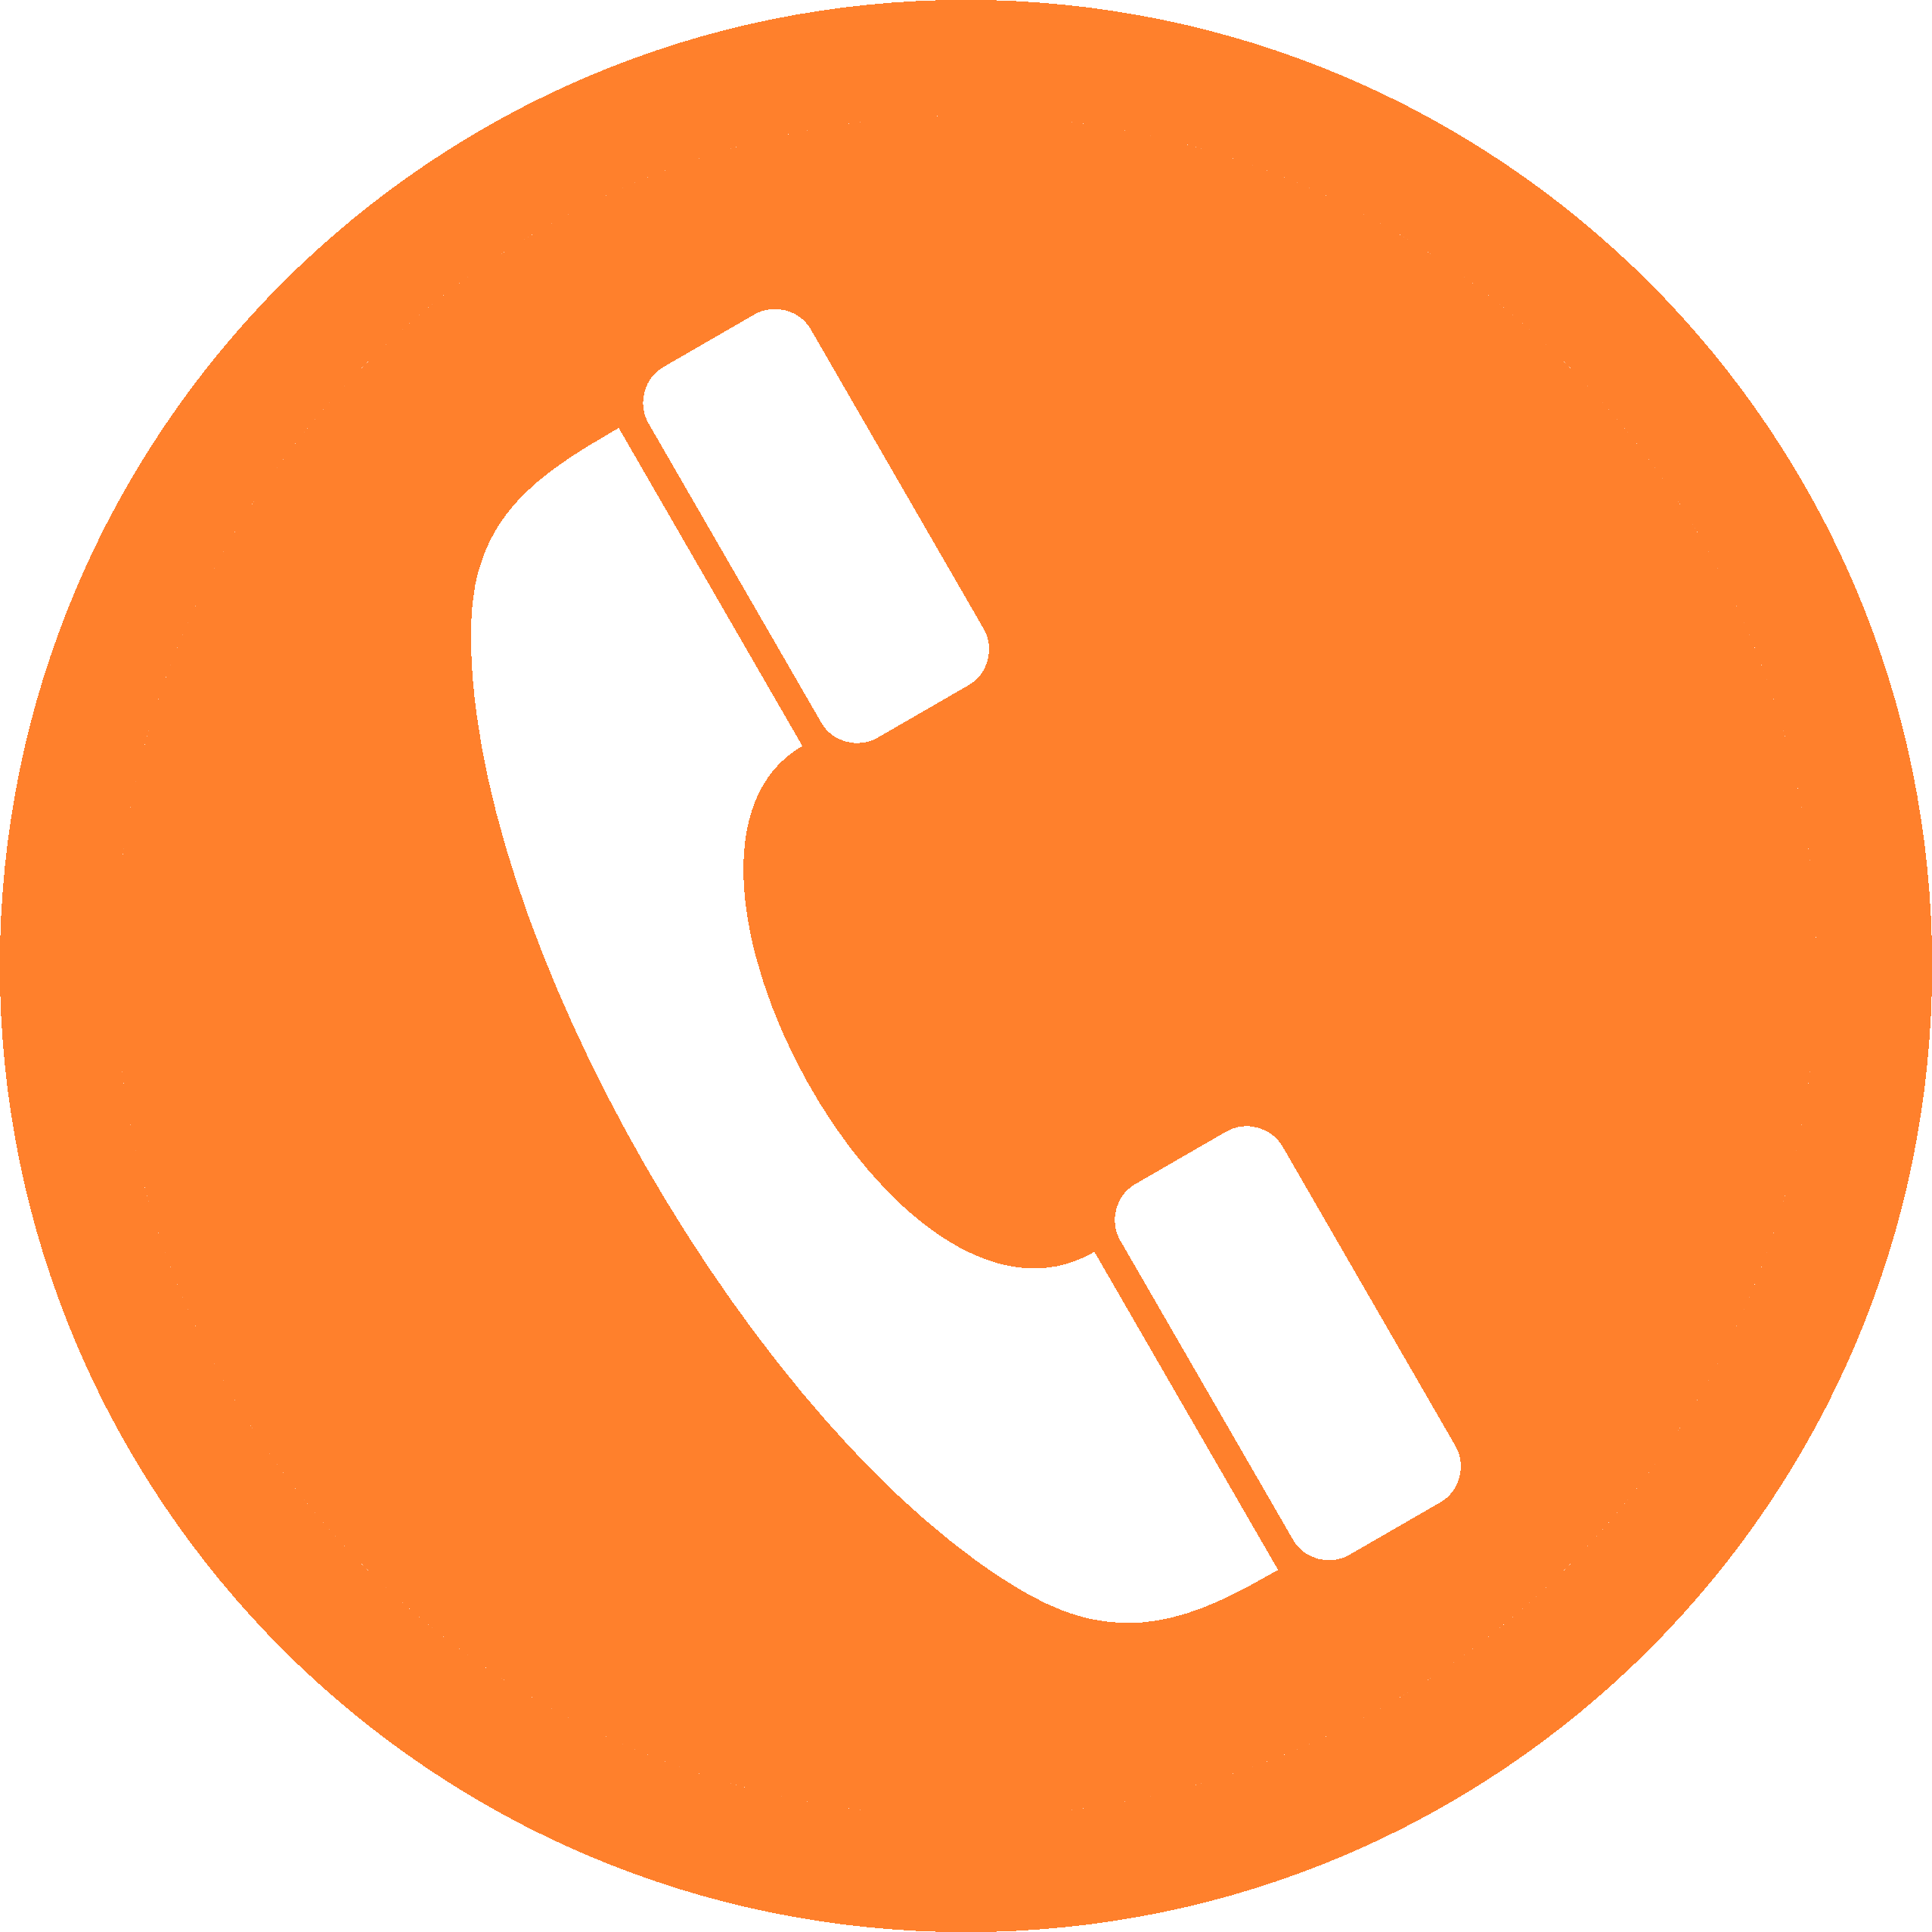 Png transparent images pluspng. Telephone clipart phone orange